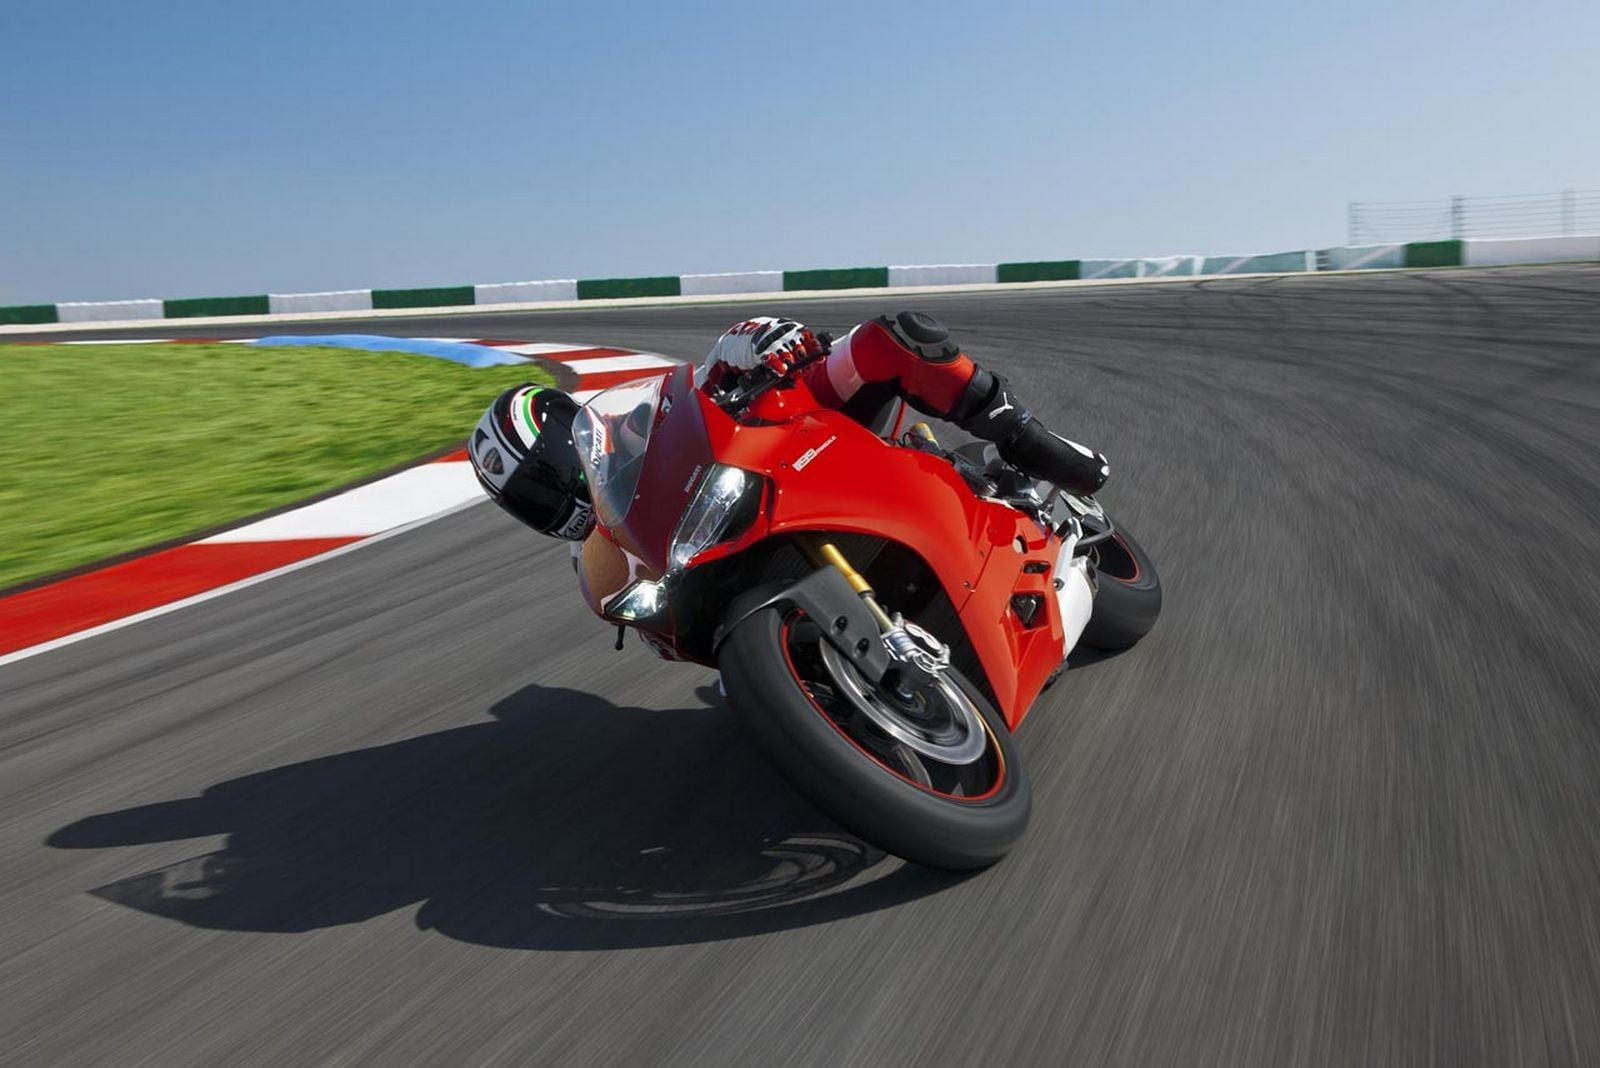 Ducati Panigale 1199 motion